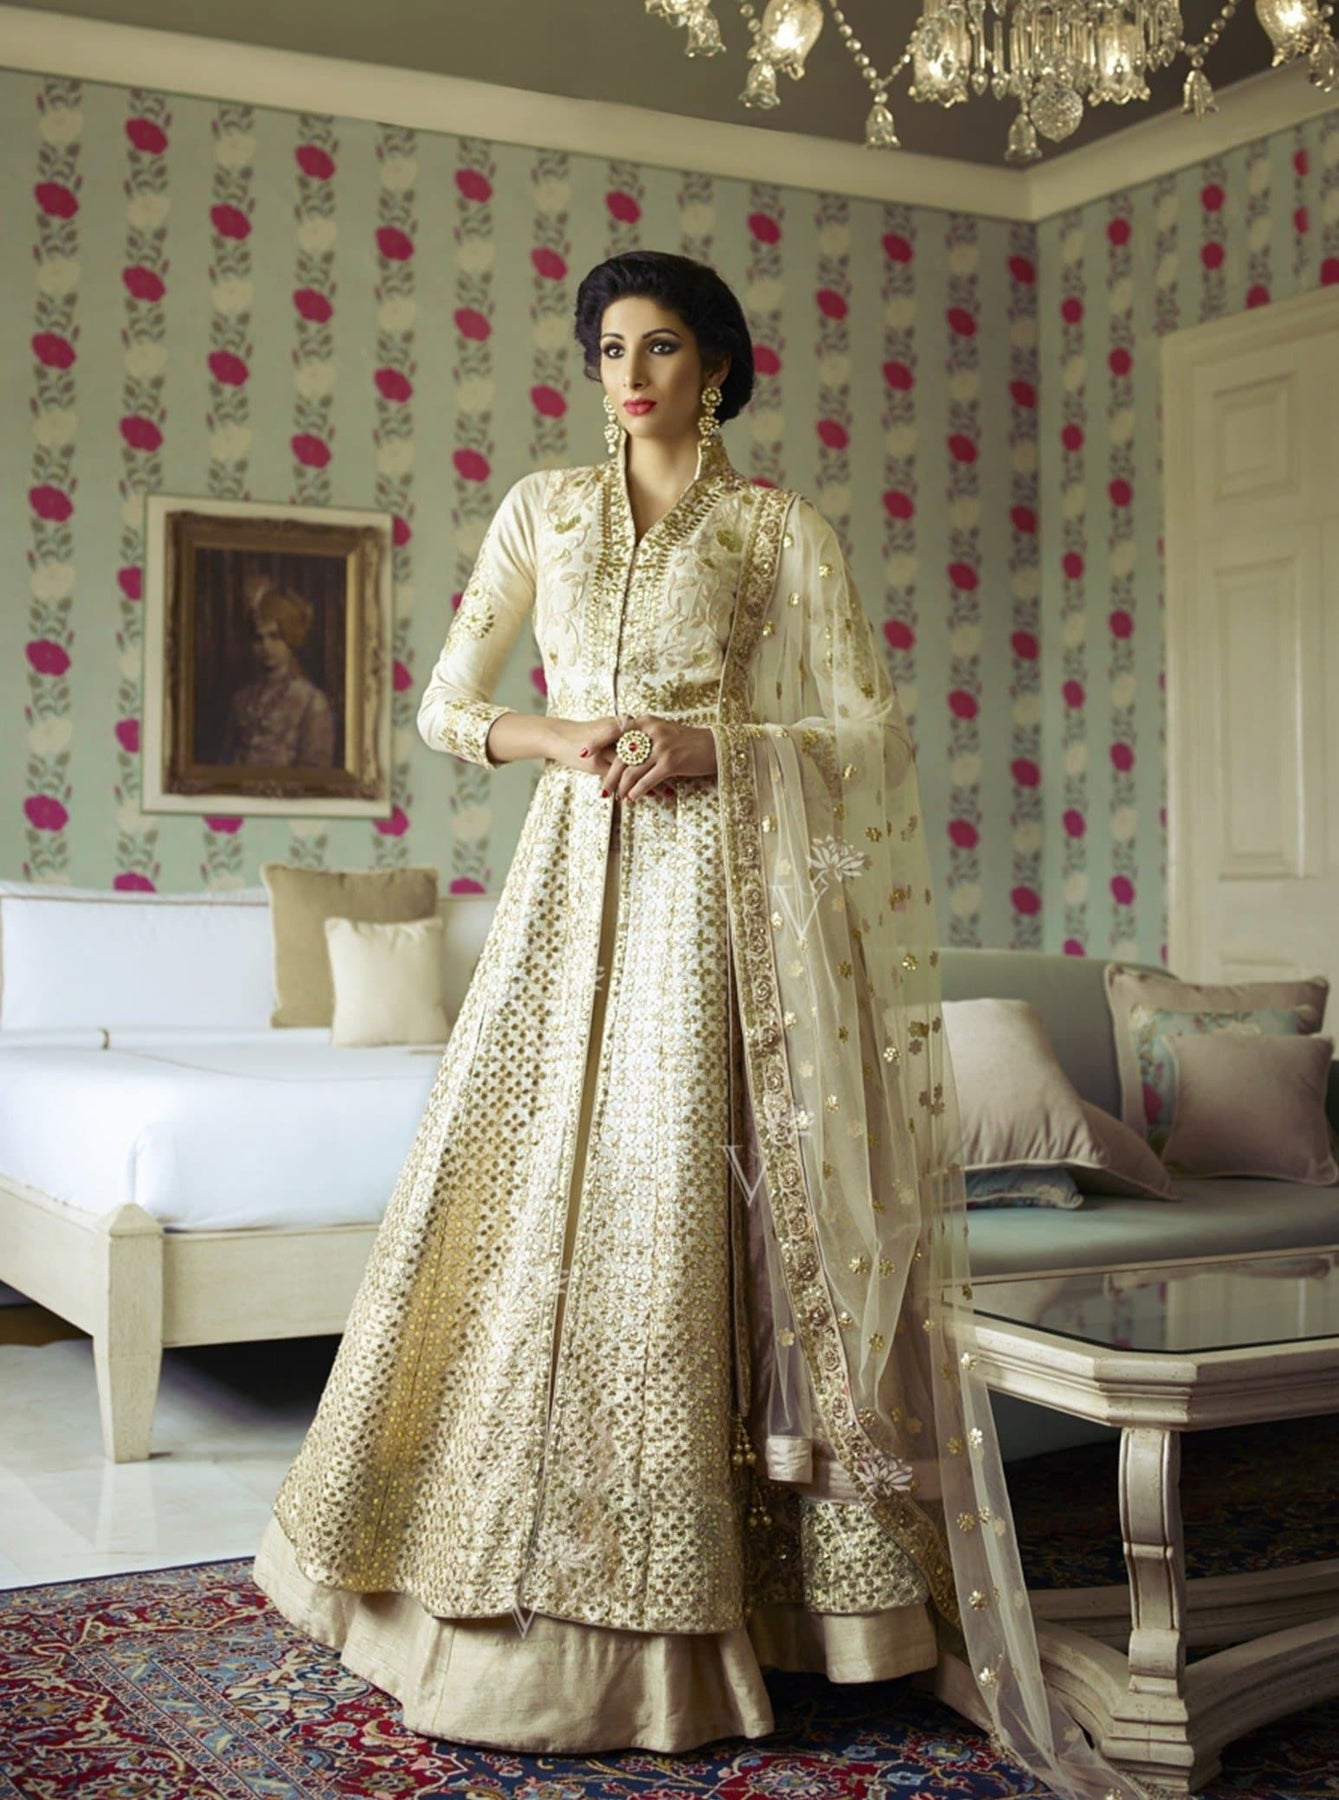 Raw Silk Jacket Lehenga with Intricate Gota Patti Work